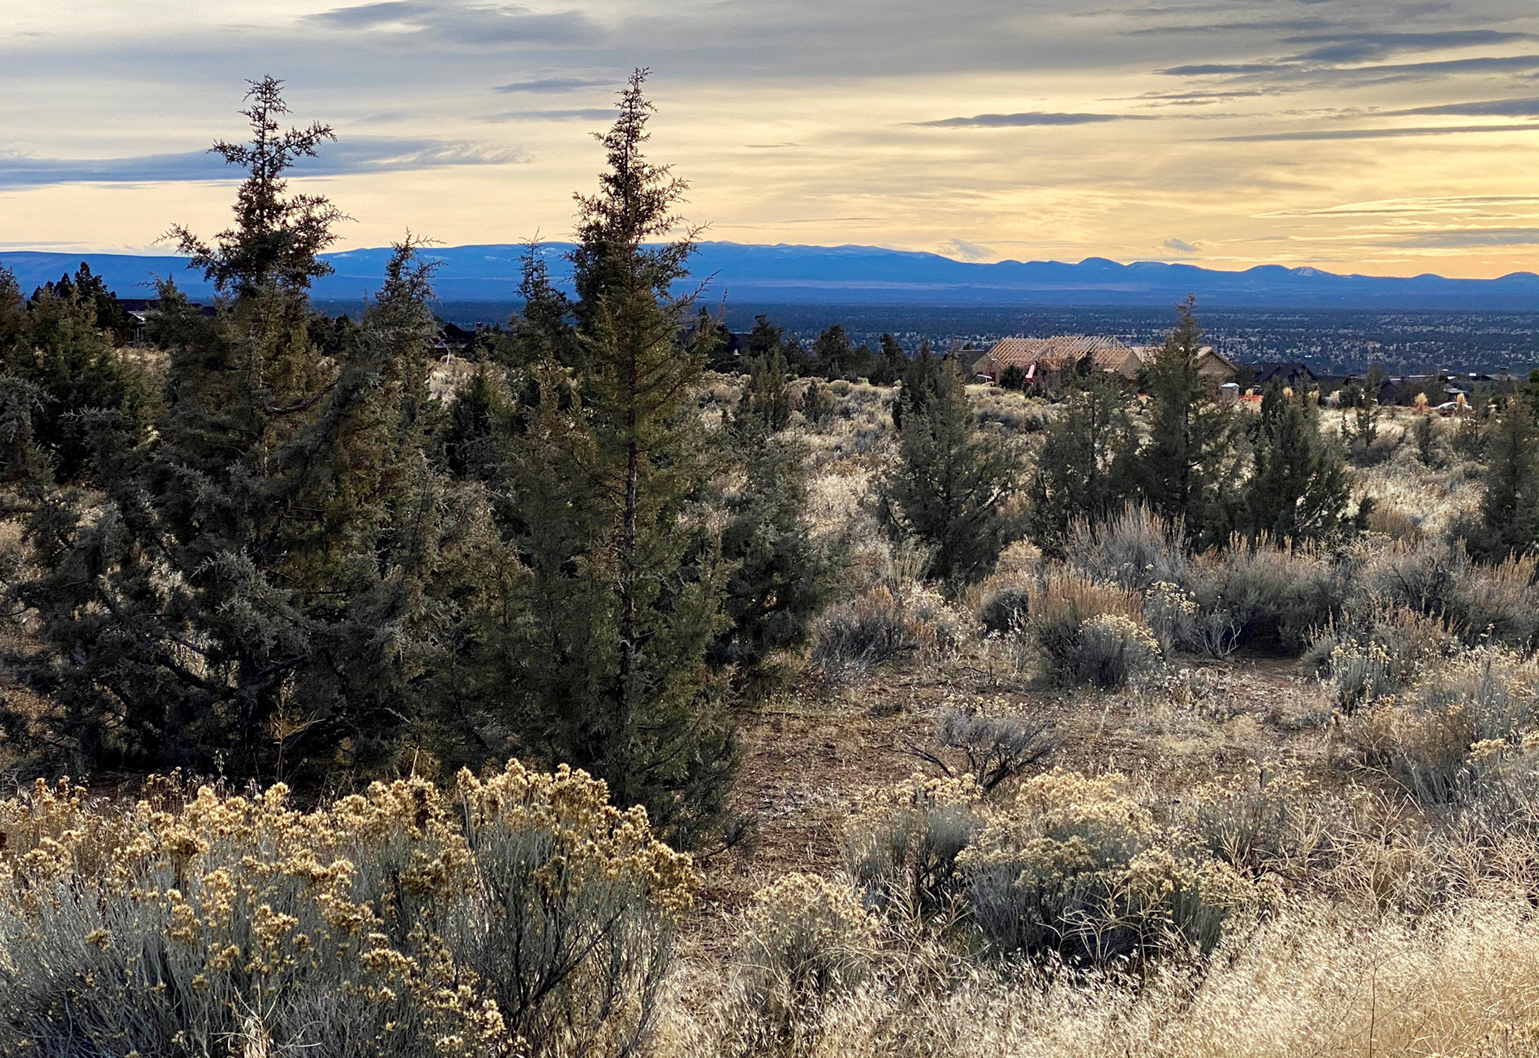 614881 SW HAT ROCK LOOP Lot 199 Powell Butte Oregon 97753